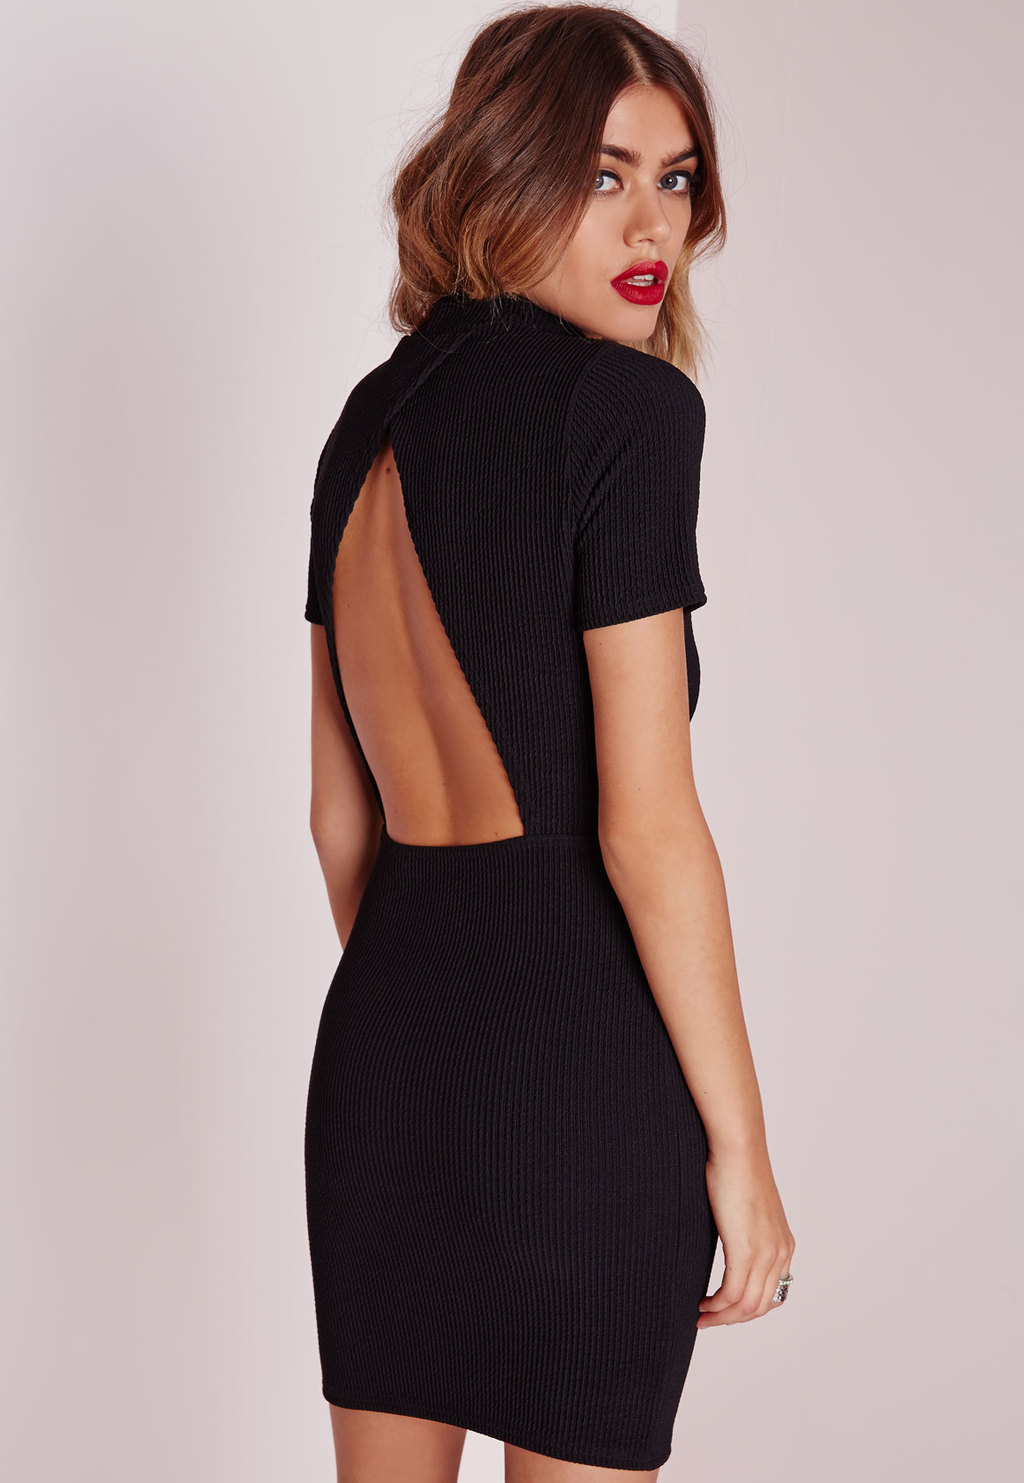 Wrap Back Ribbed Bodycon Dress Black, Black - length: mid thigh; fit: tight; pattern: plain; neckline: high neck; style: bodycon; back detail: back revealing; predominant colour: black; occasions: evening; fibres: polyester/polyamide - stretch; sleeve length: short sleeve; sleeve style: standard; texture group: jersey - clingy; pattern type: fabric; season: a/w 2015; wardrobe: event